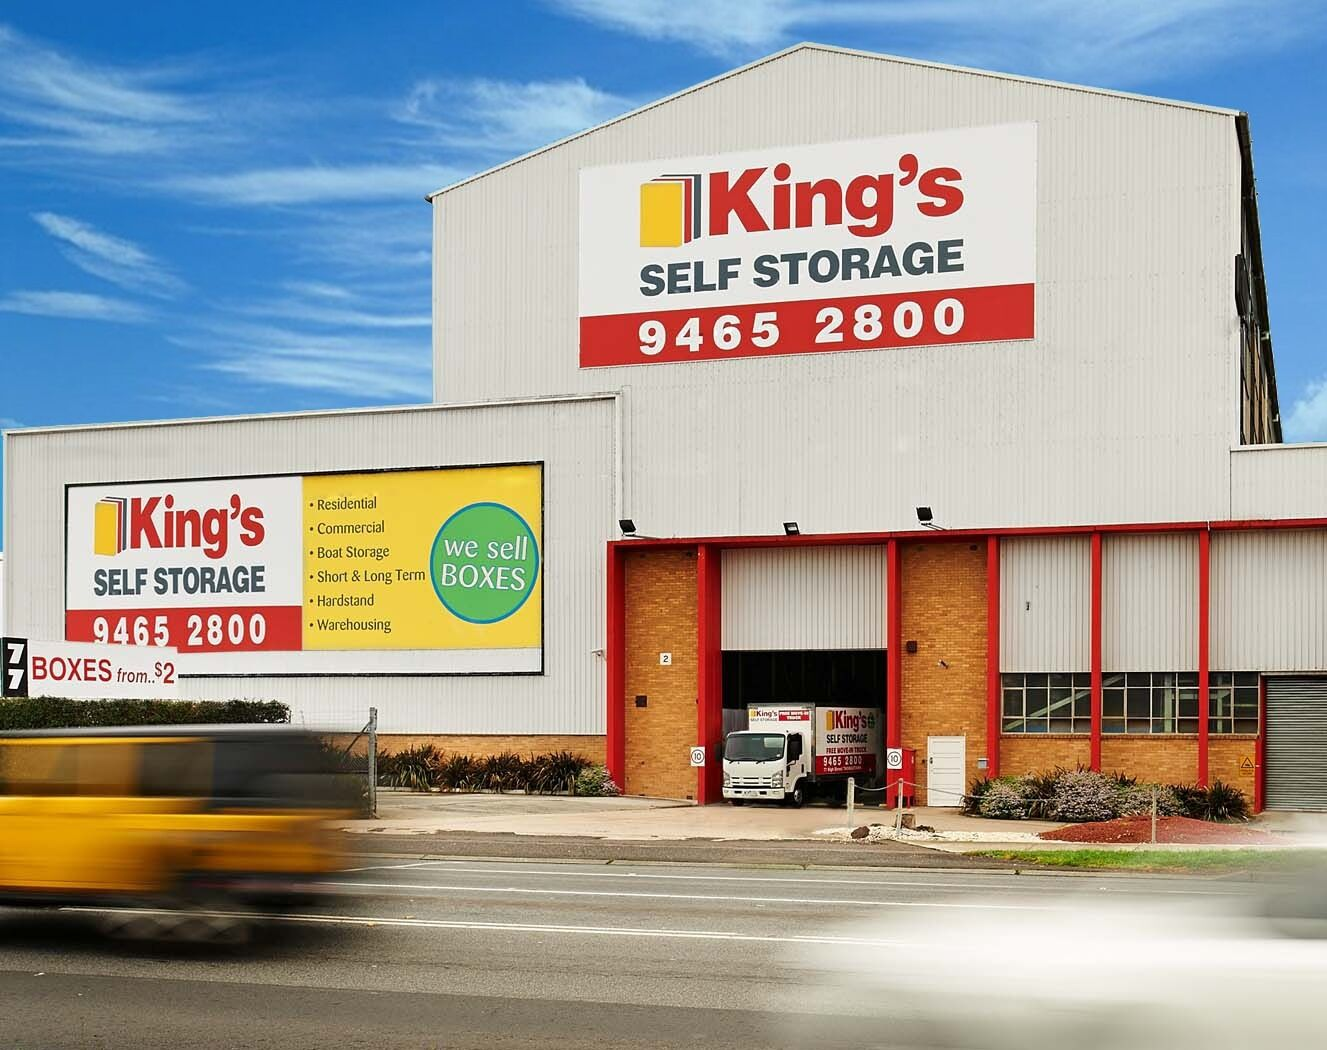 King's Self Storage